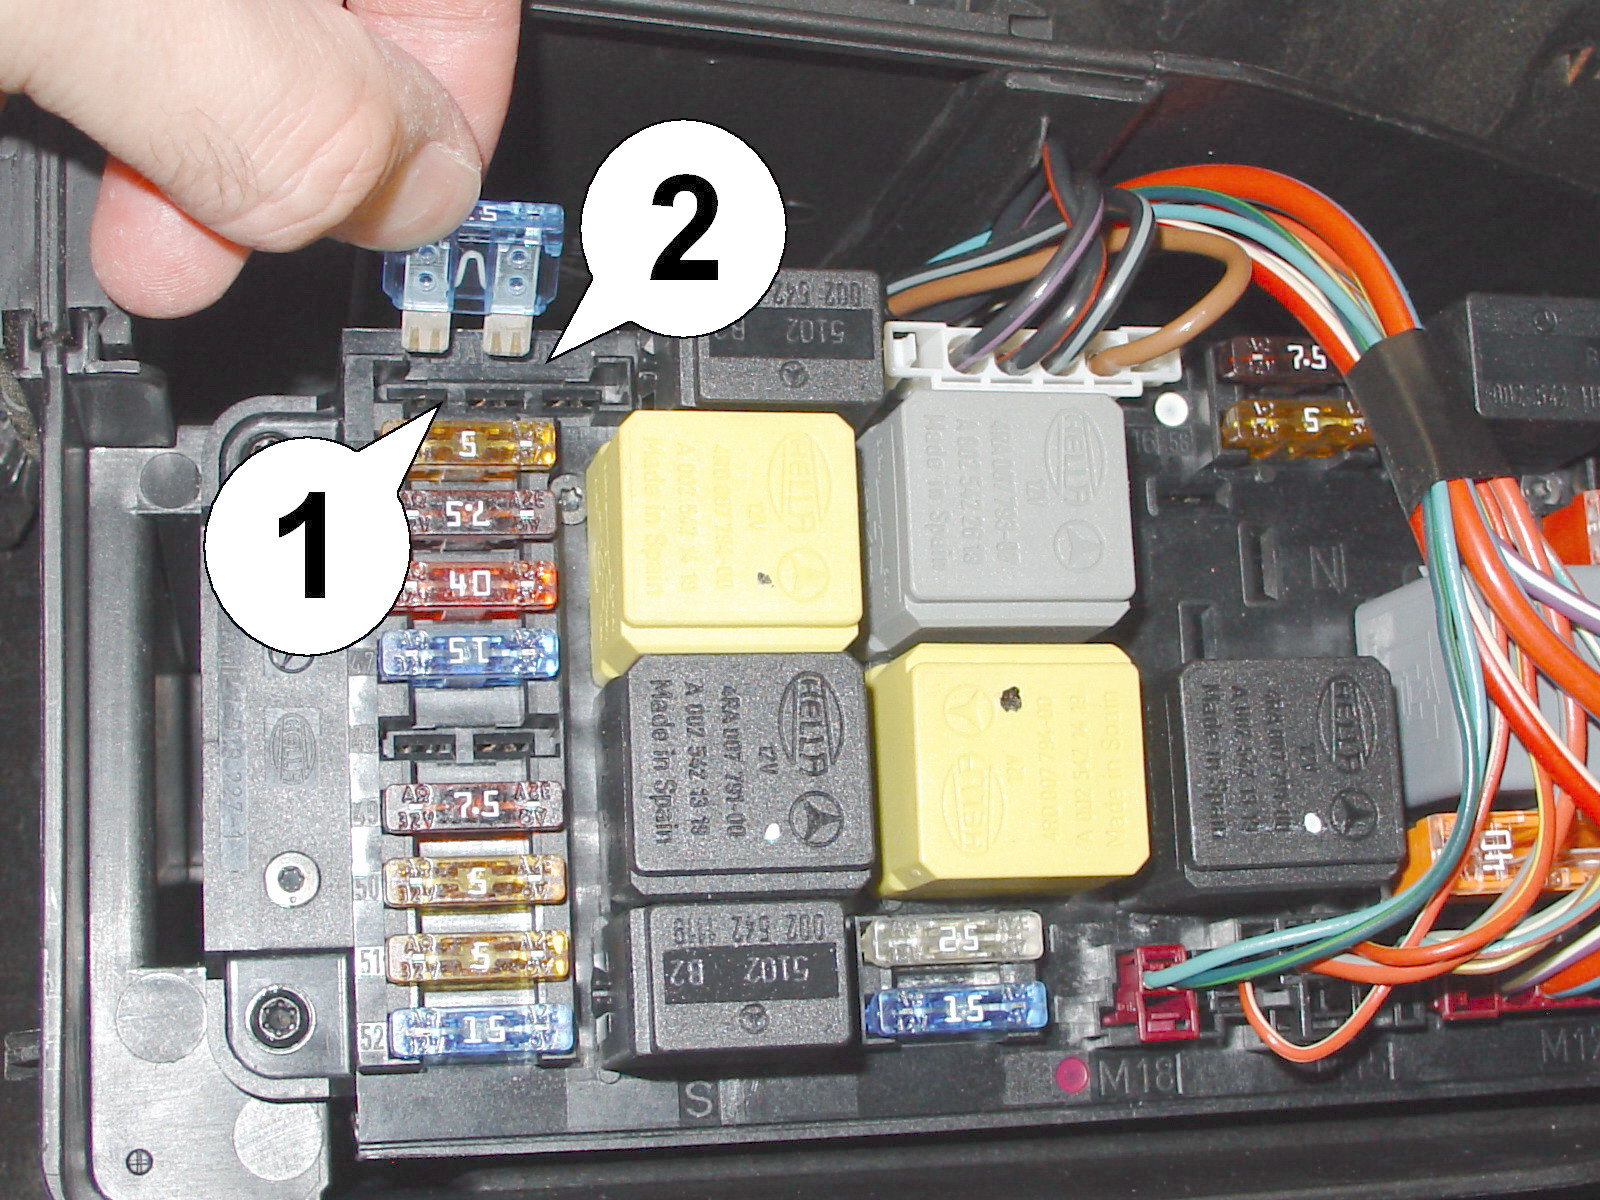 Mercedes W203 Fuse Box | Wiring Liry on horn steering diagram, car horn diagram, horn installation diagram, horn relay, horn safety, gm horn diagram, horn circuit, air horn diagram, horn schematic, horn parts, horn assembly diagram, horn cover,